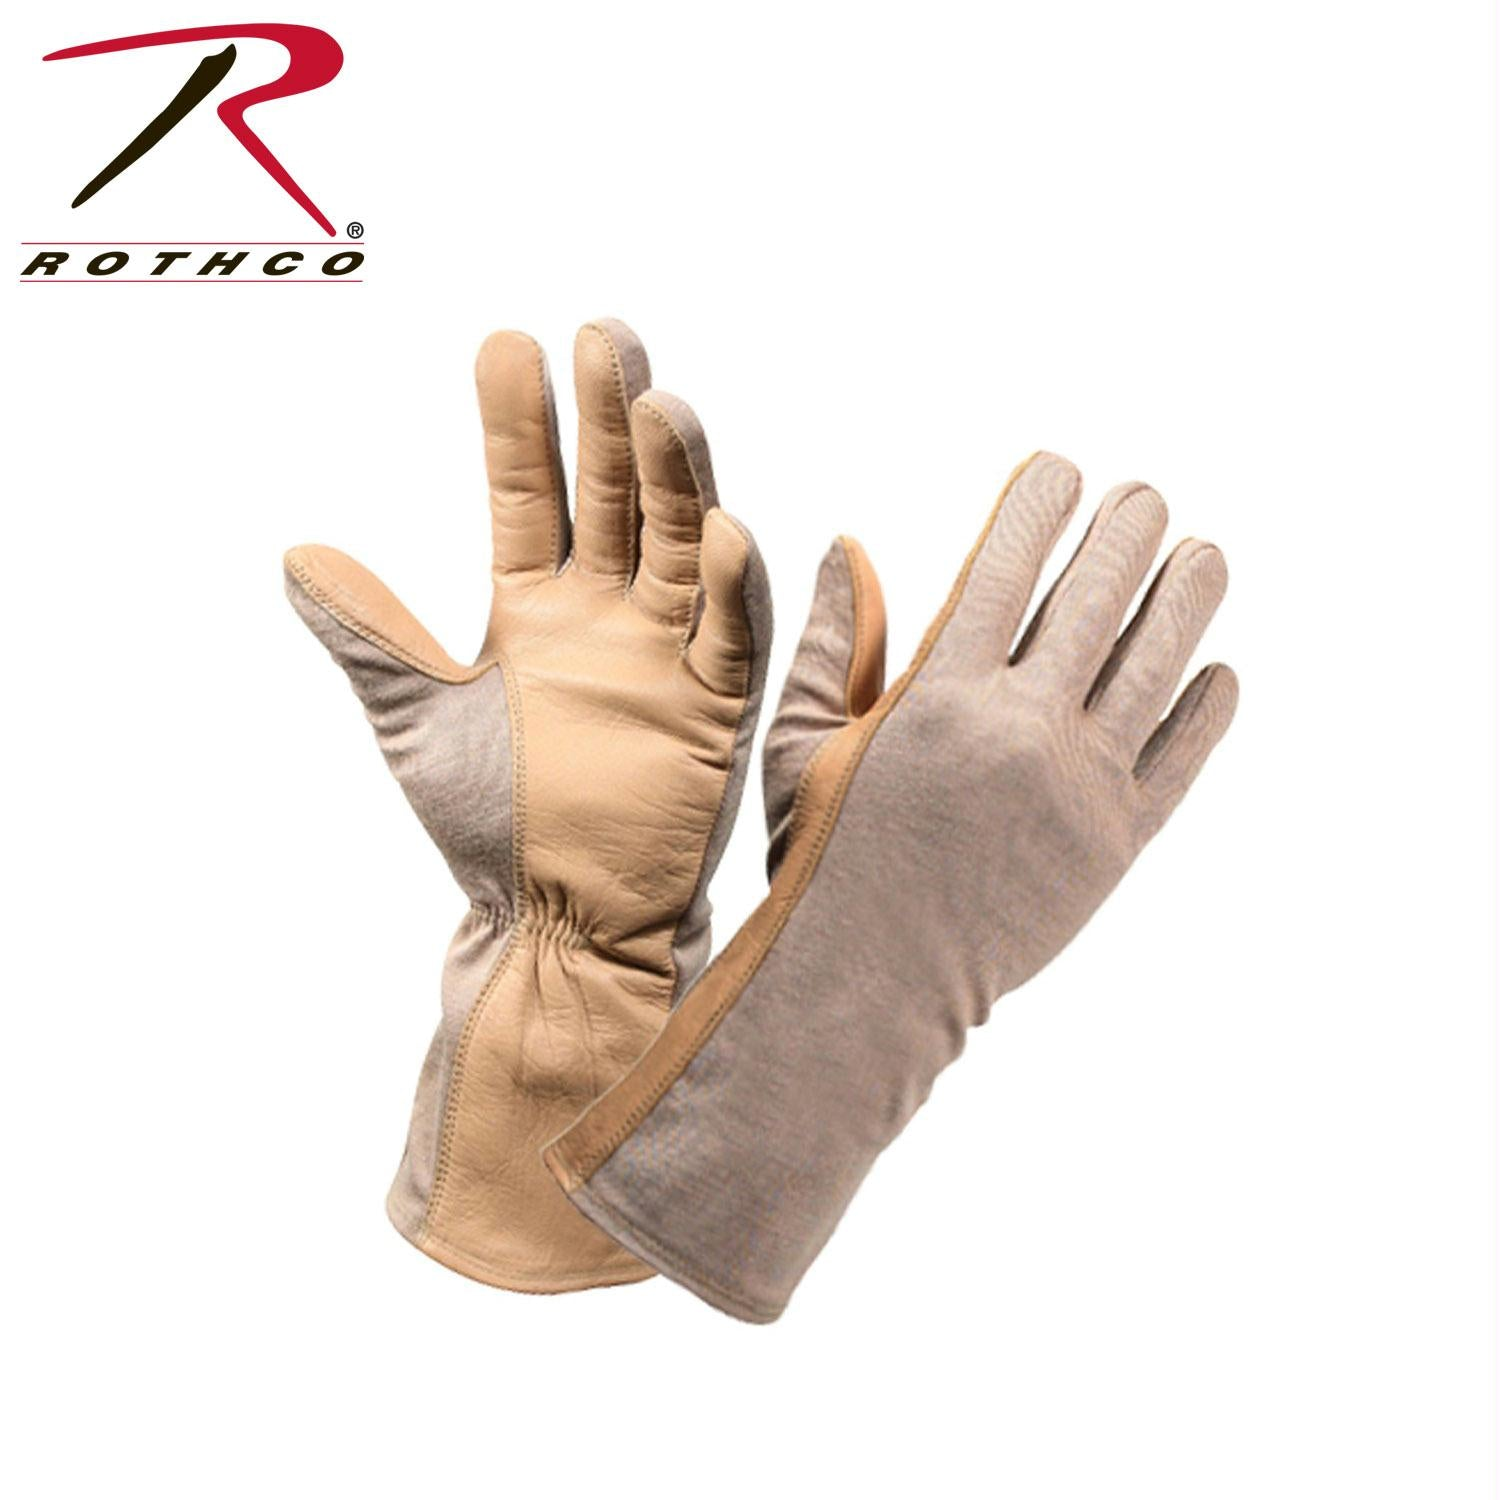 Rothco G.I. Type Flame & Heat Resistant Flight Gloves - Desert Sand / 12